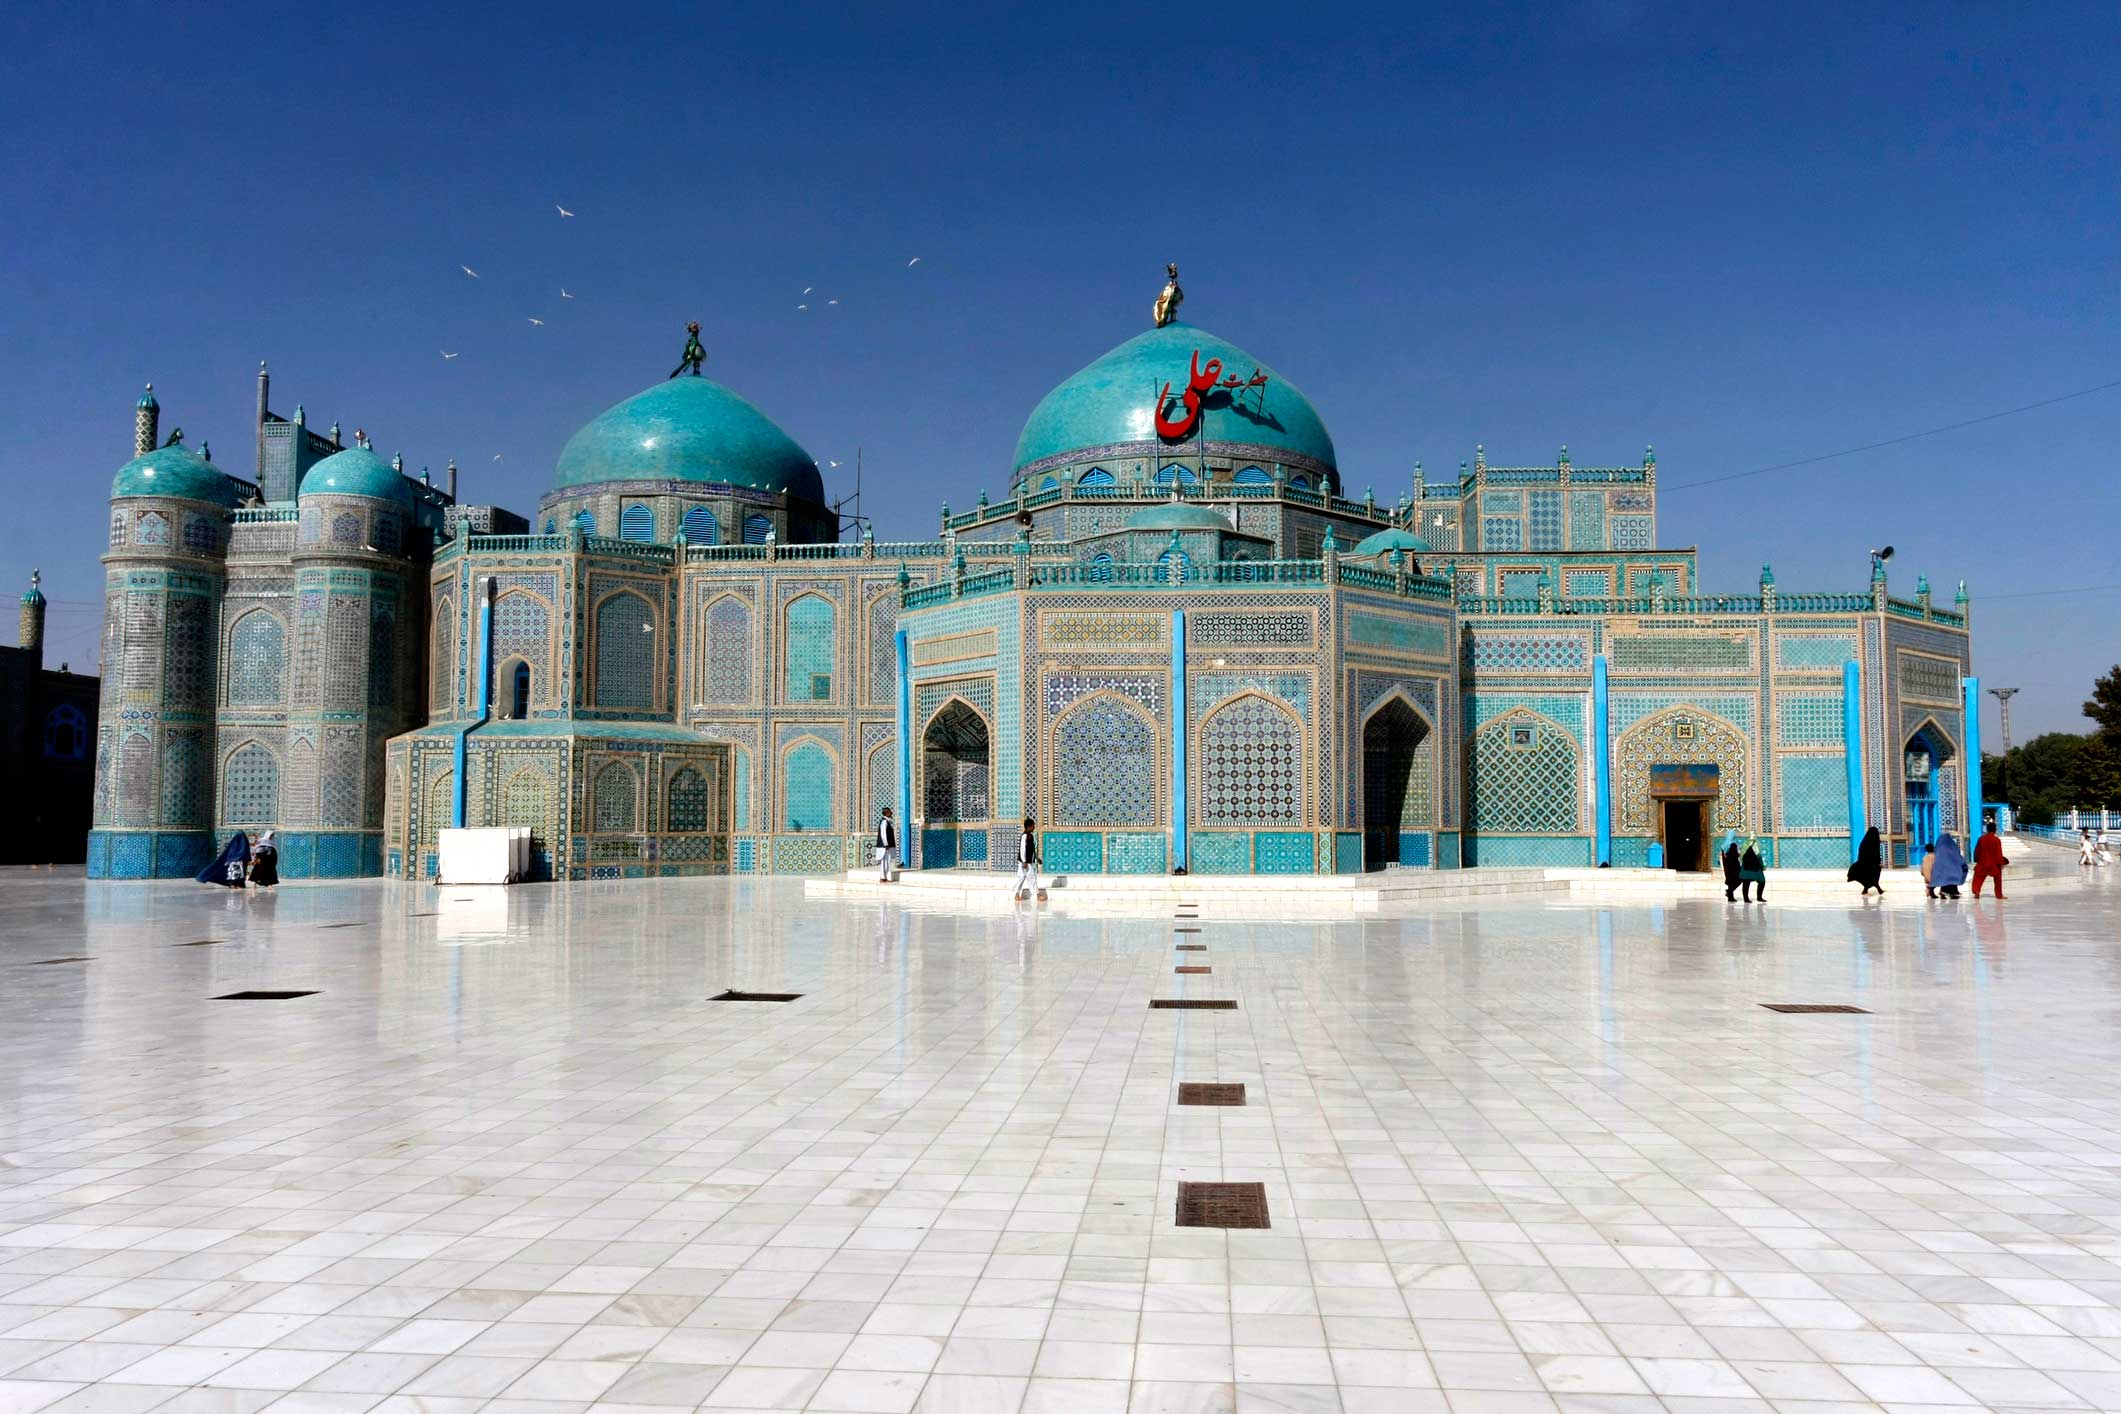 Feraidon draws inspiration from The Blue Mosque, a prominent mosque in her hometown in Afghanistan.